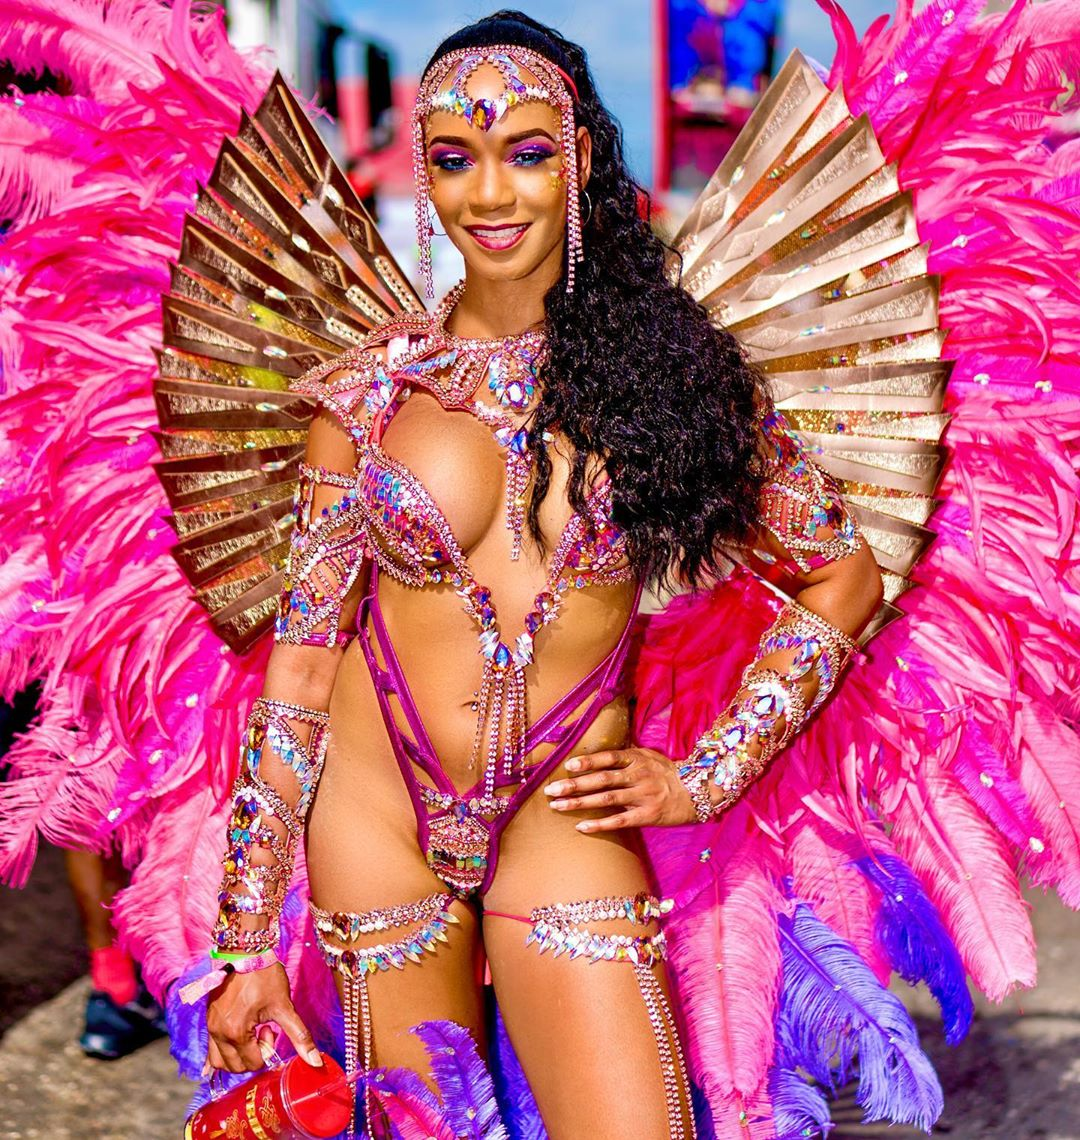 Fuchsia and Hot Pink Carnival Costume for Women